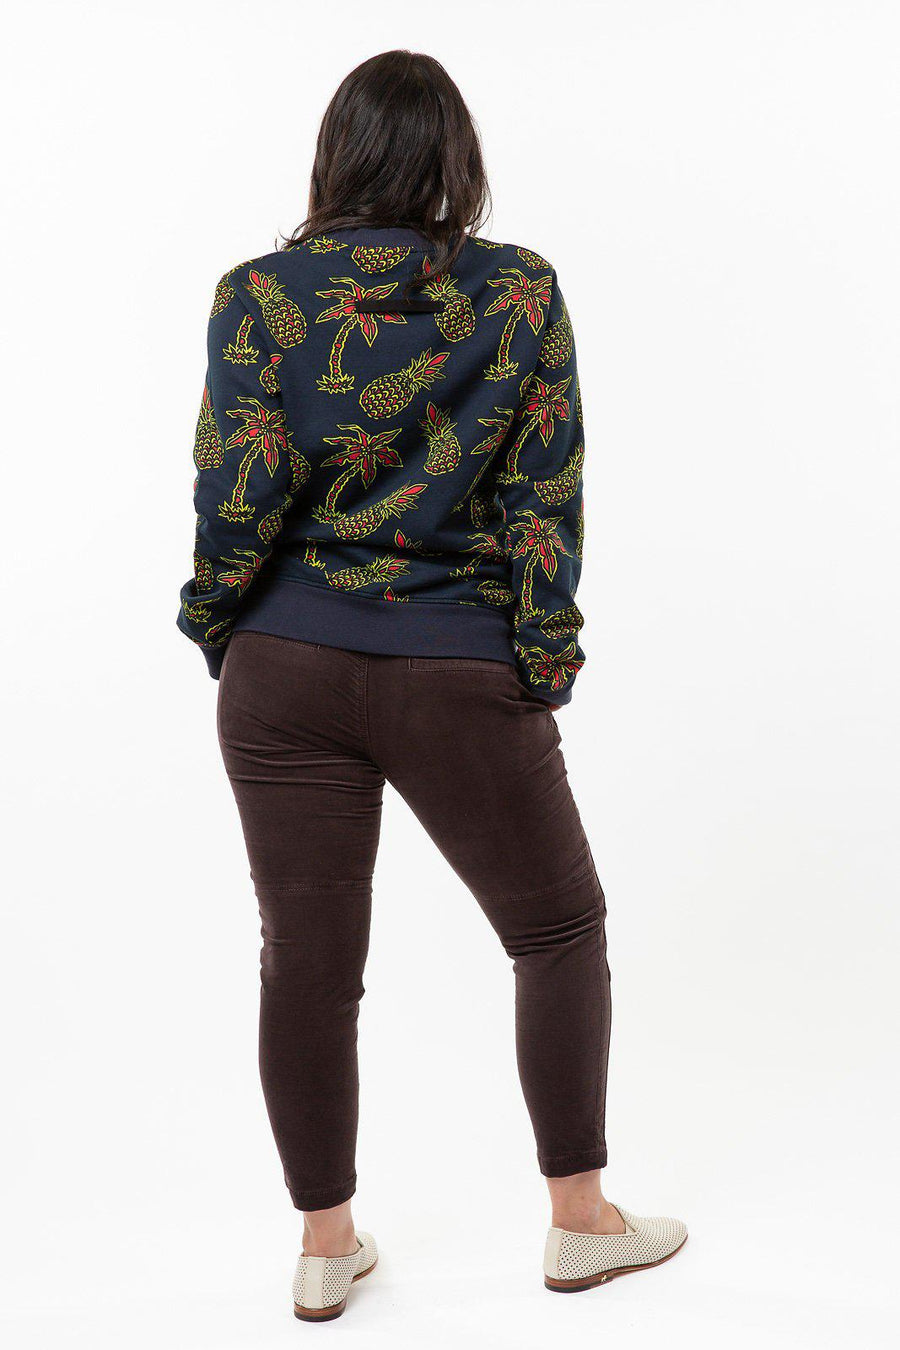 Miles Pineapple Crewneck Sweatshirt